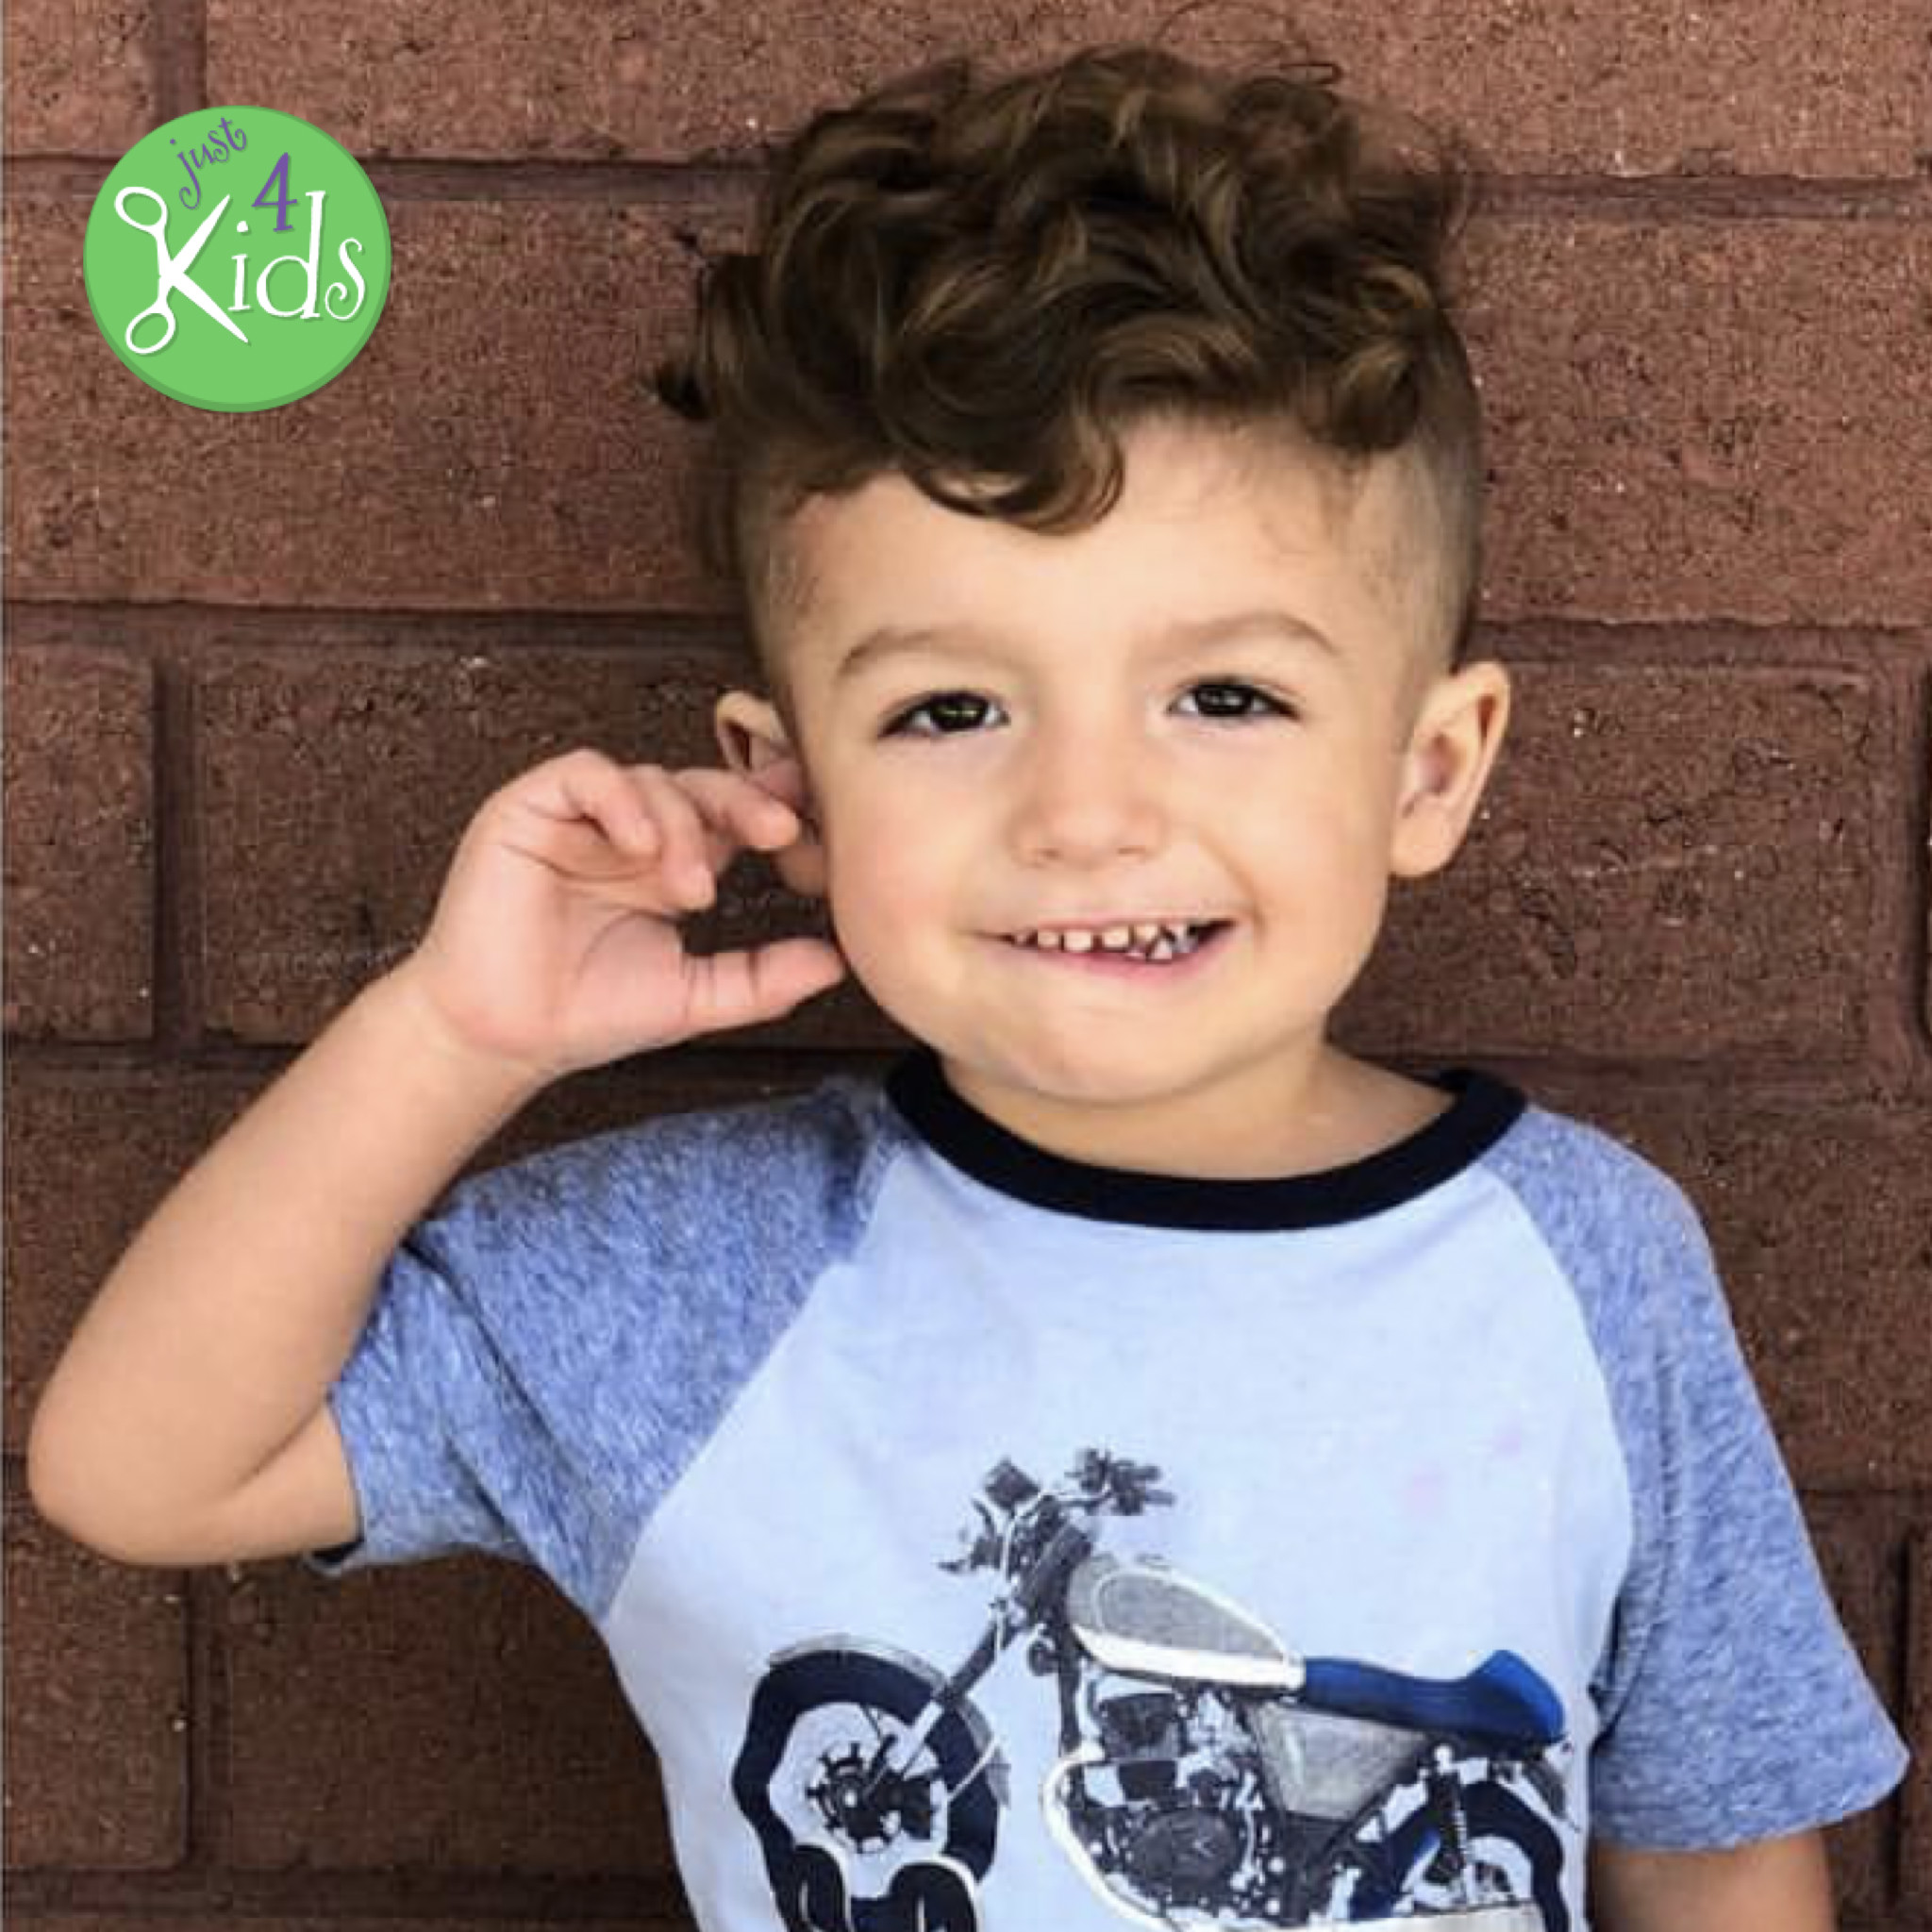 Kids Haircuts Curly Hair  Top Kids Hairstyles 2018 Long Hairstyles for Boys Long